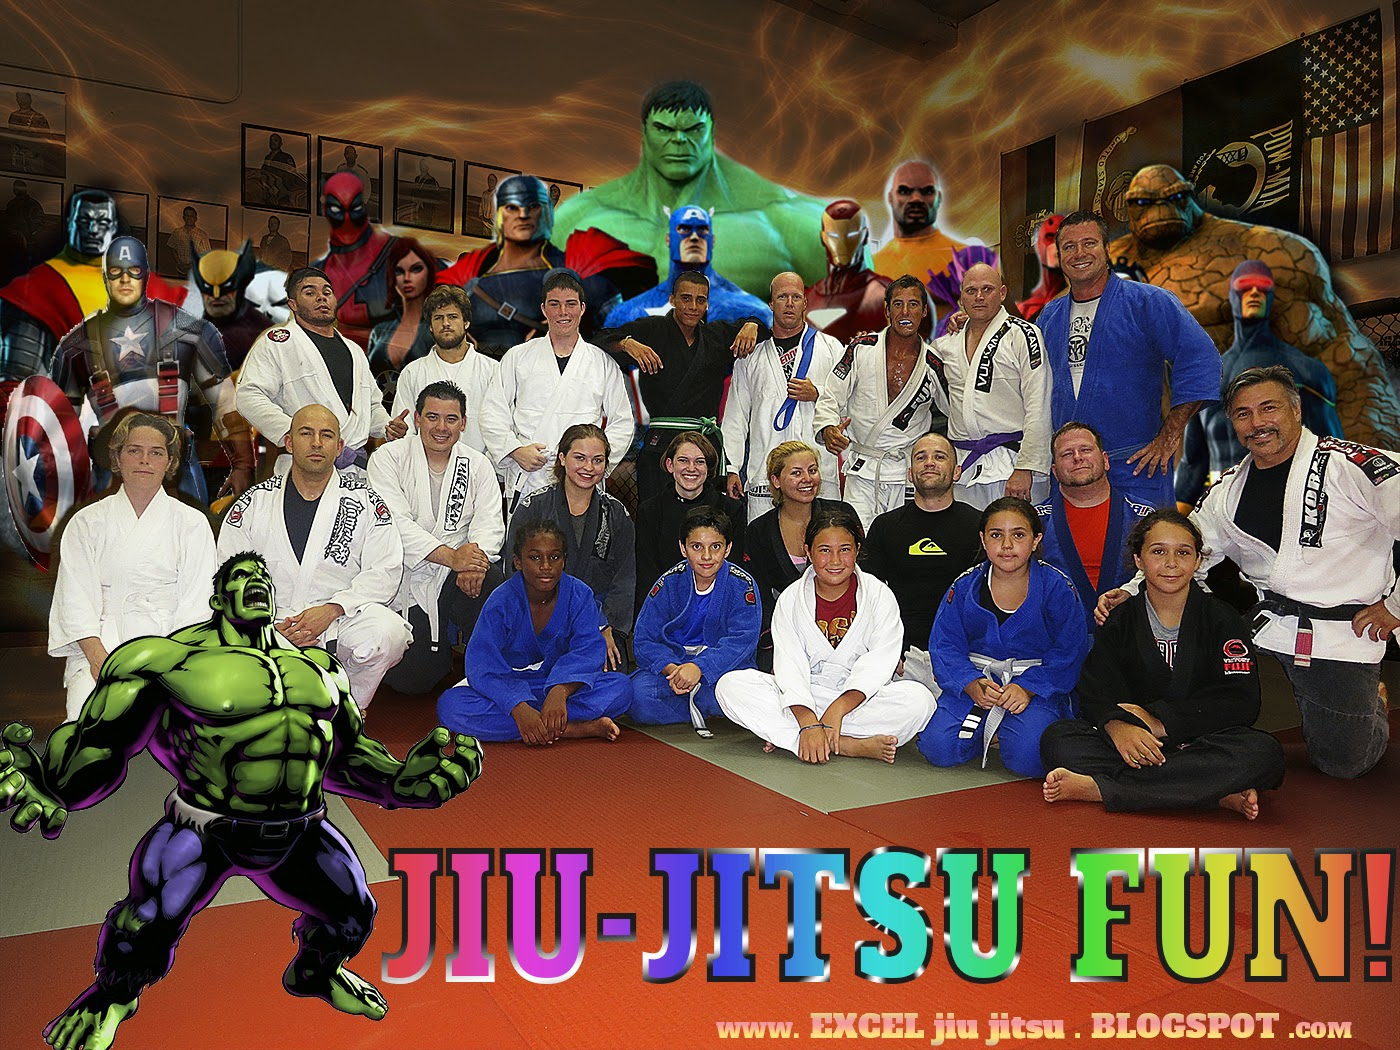 jiu jitsu class Hollywood brazilian jiu jitsu has been the premiere brazilian jiu jitsu academy  in los angeles,  fill out the form below to get your free introduction class.